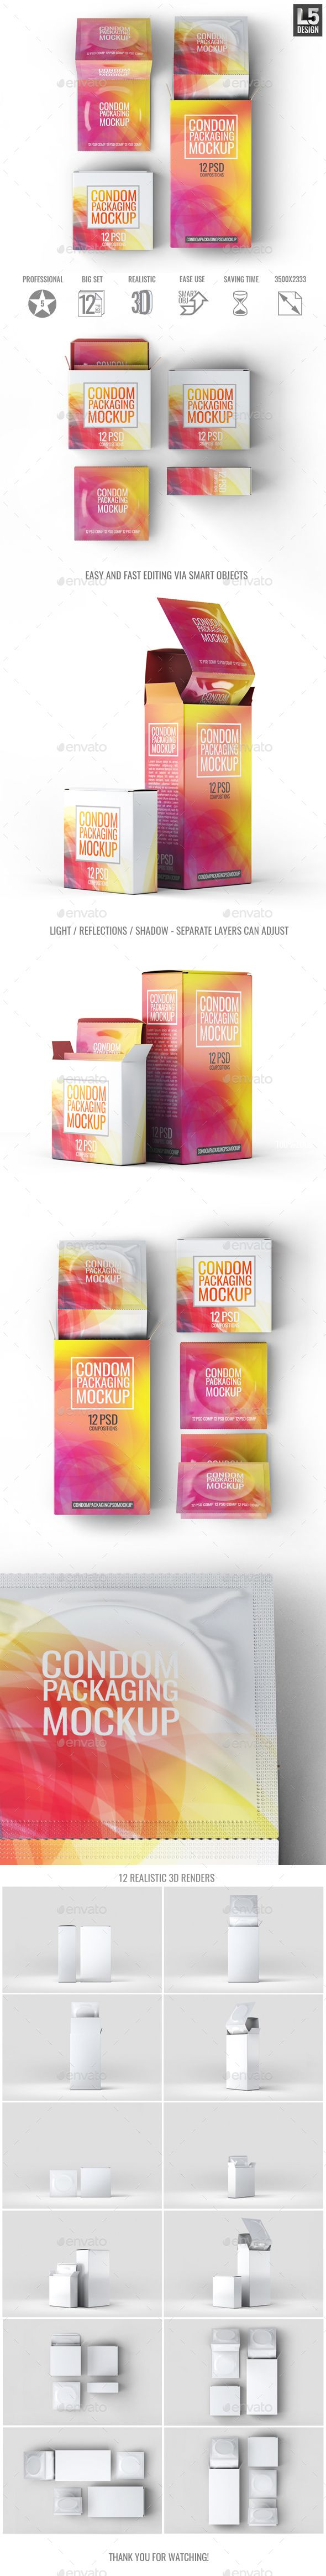 Condoms Packaging Mock-Up #box • Click here to download ! http://graphicriver.net/item/condoms-packaging-mockup/15983122?ref=pxcr